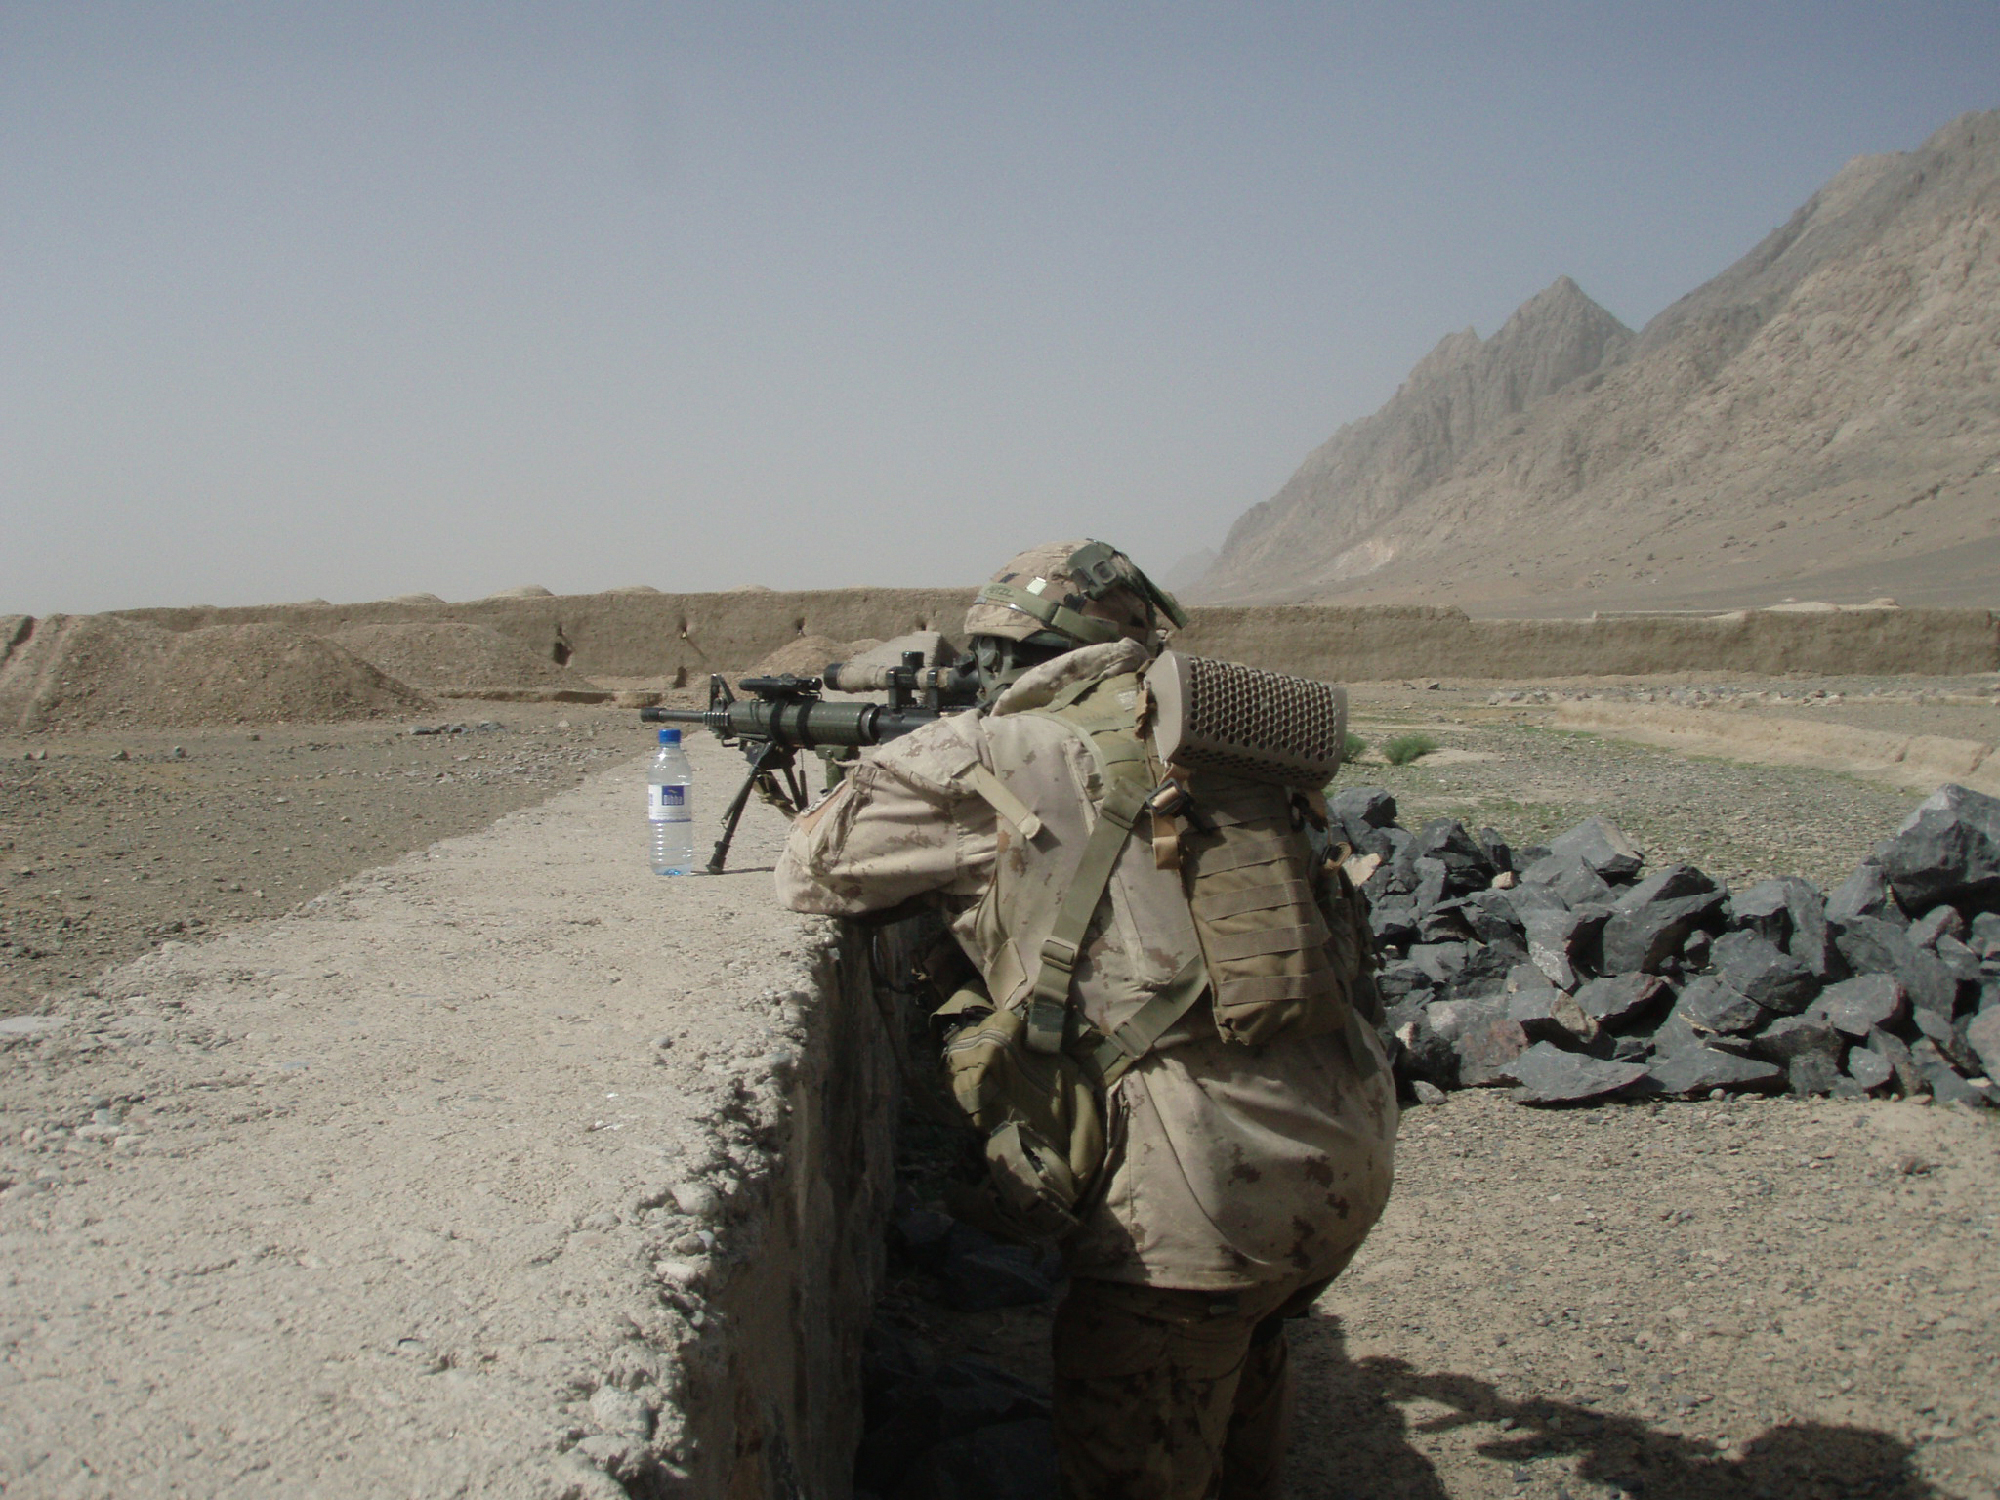 A Seaforth provides 'top cover' for a patrol outside the village of Dah-e-Bagh, Dand district. April 2010